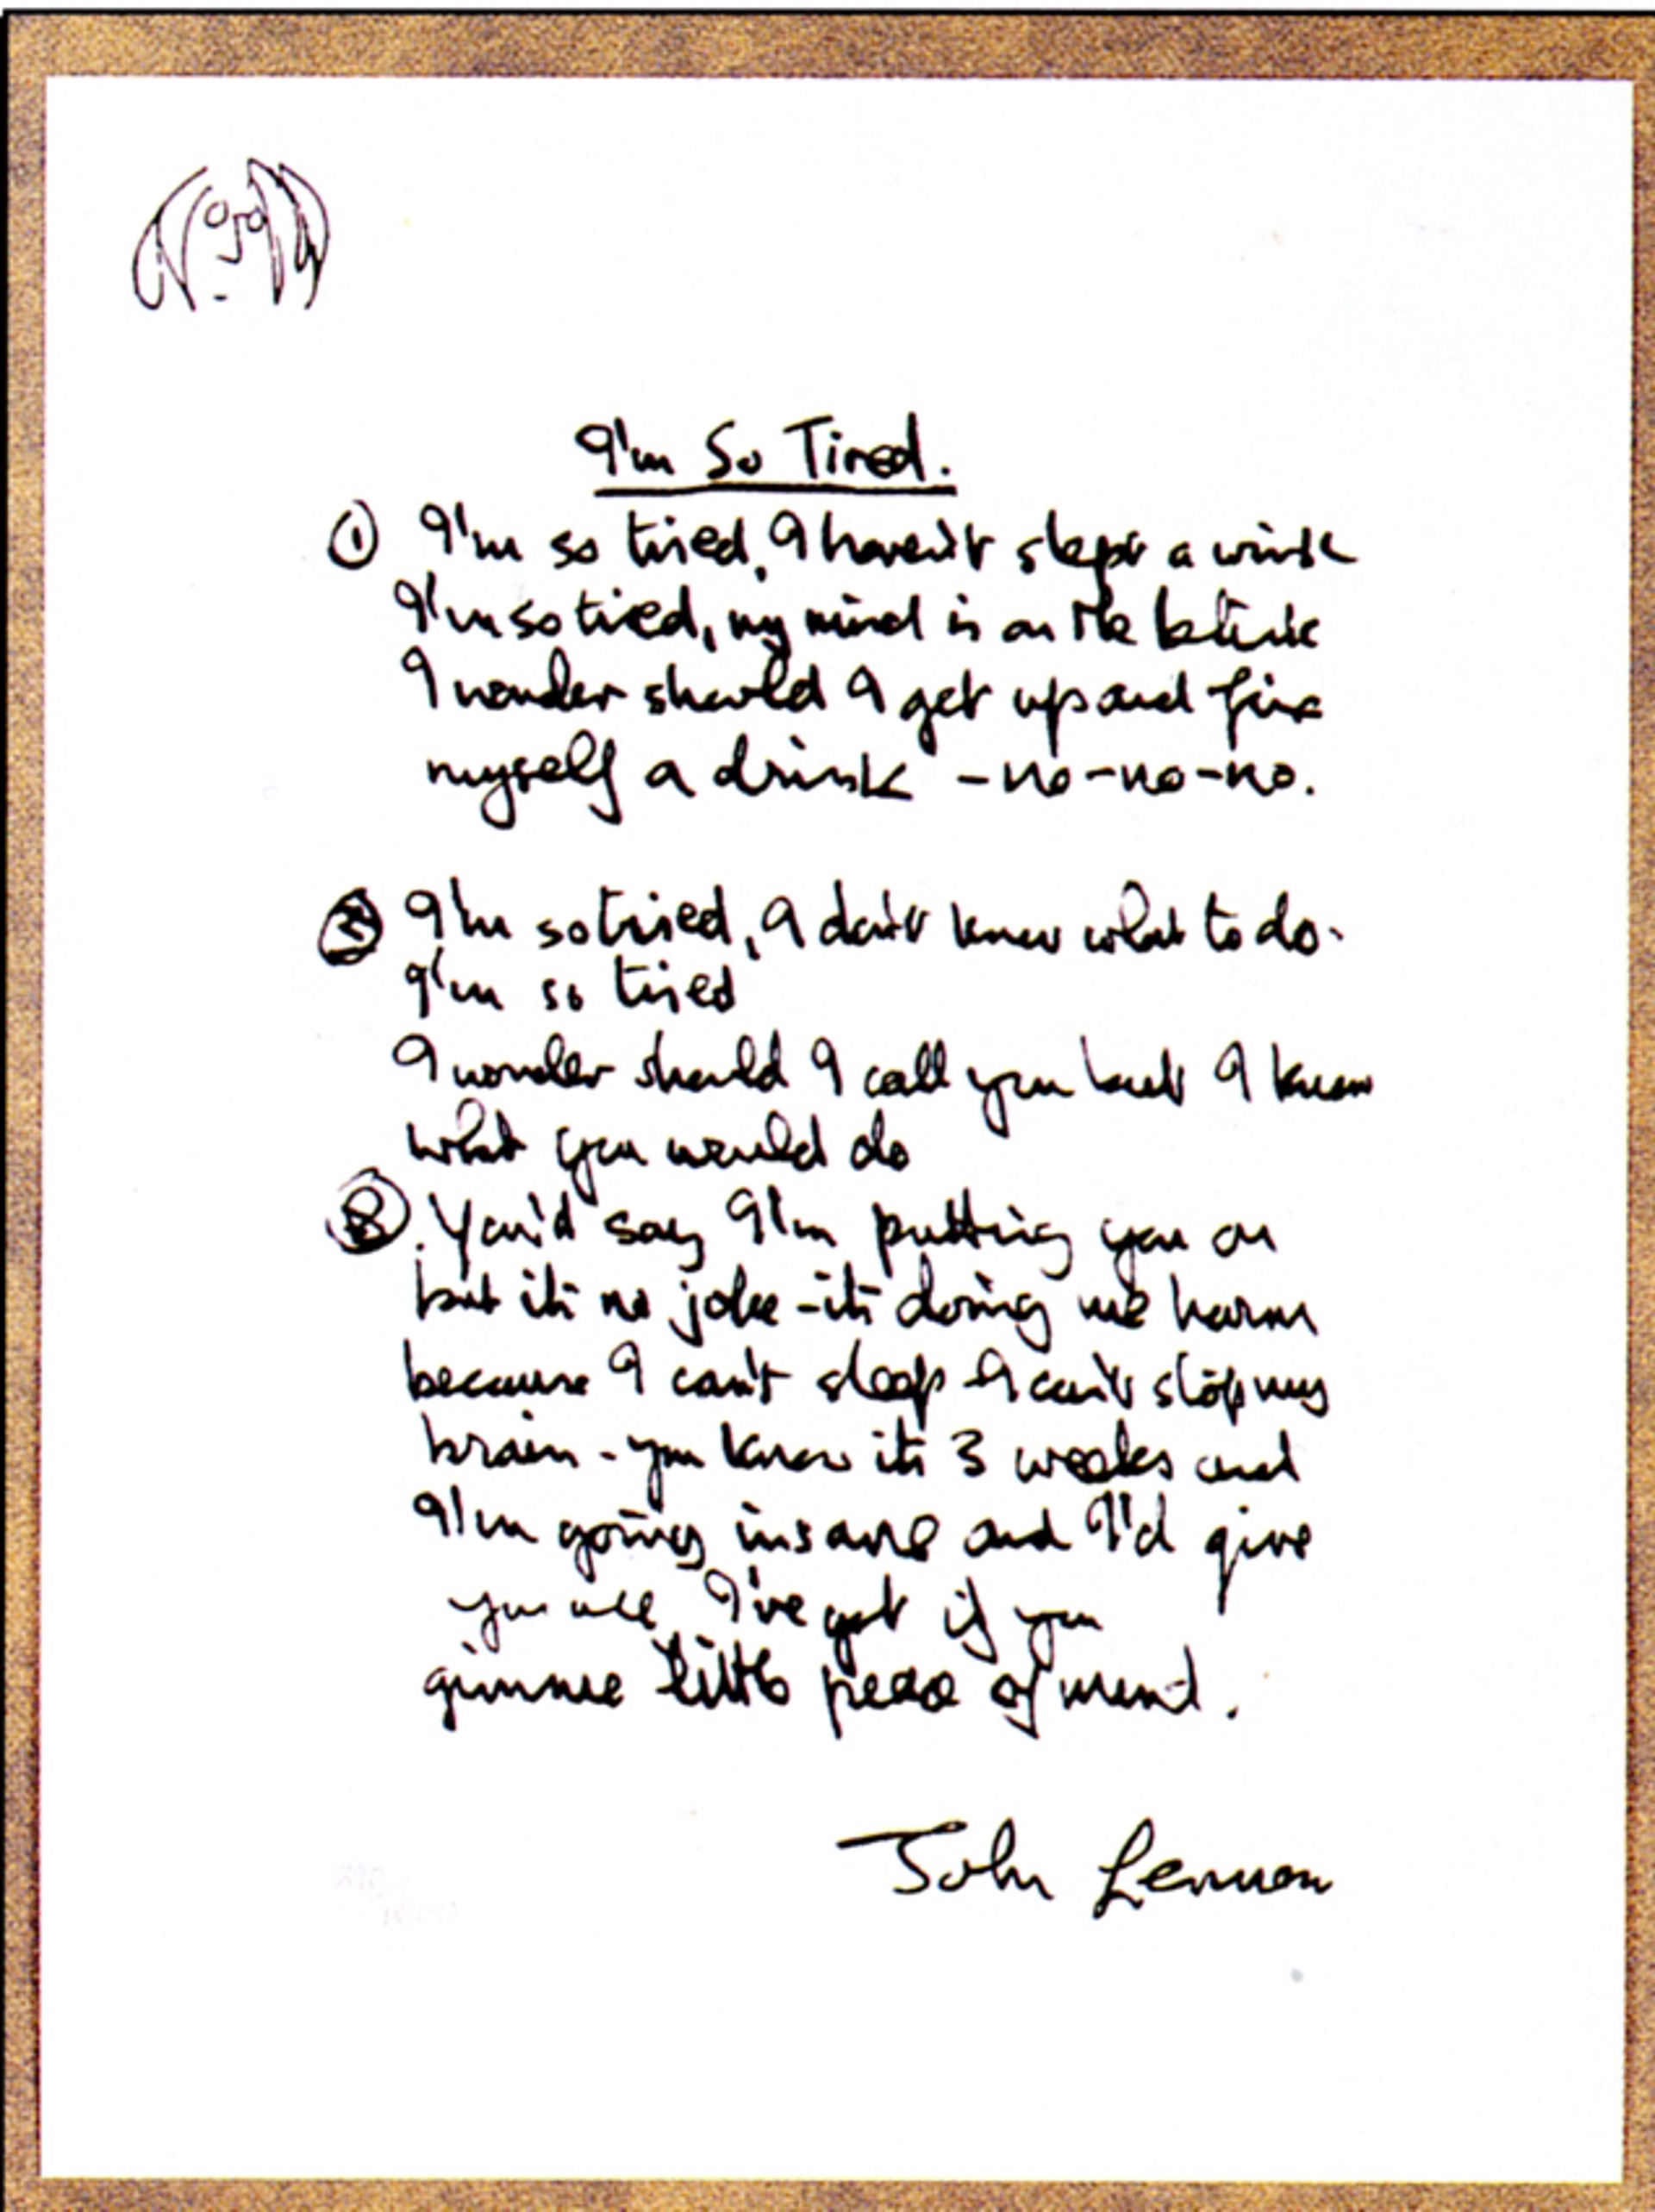 """I'm So Tired"" Lyrics by John Lennon"